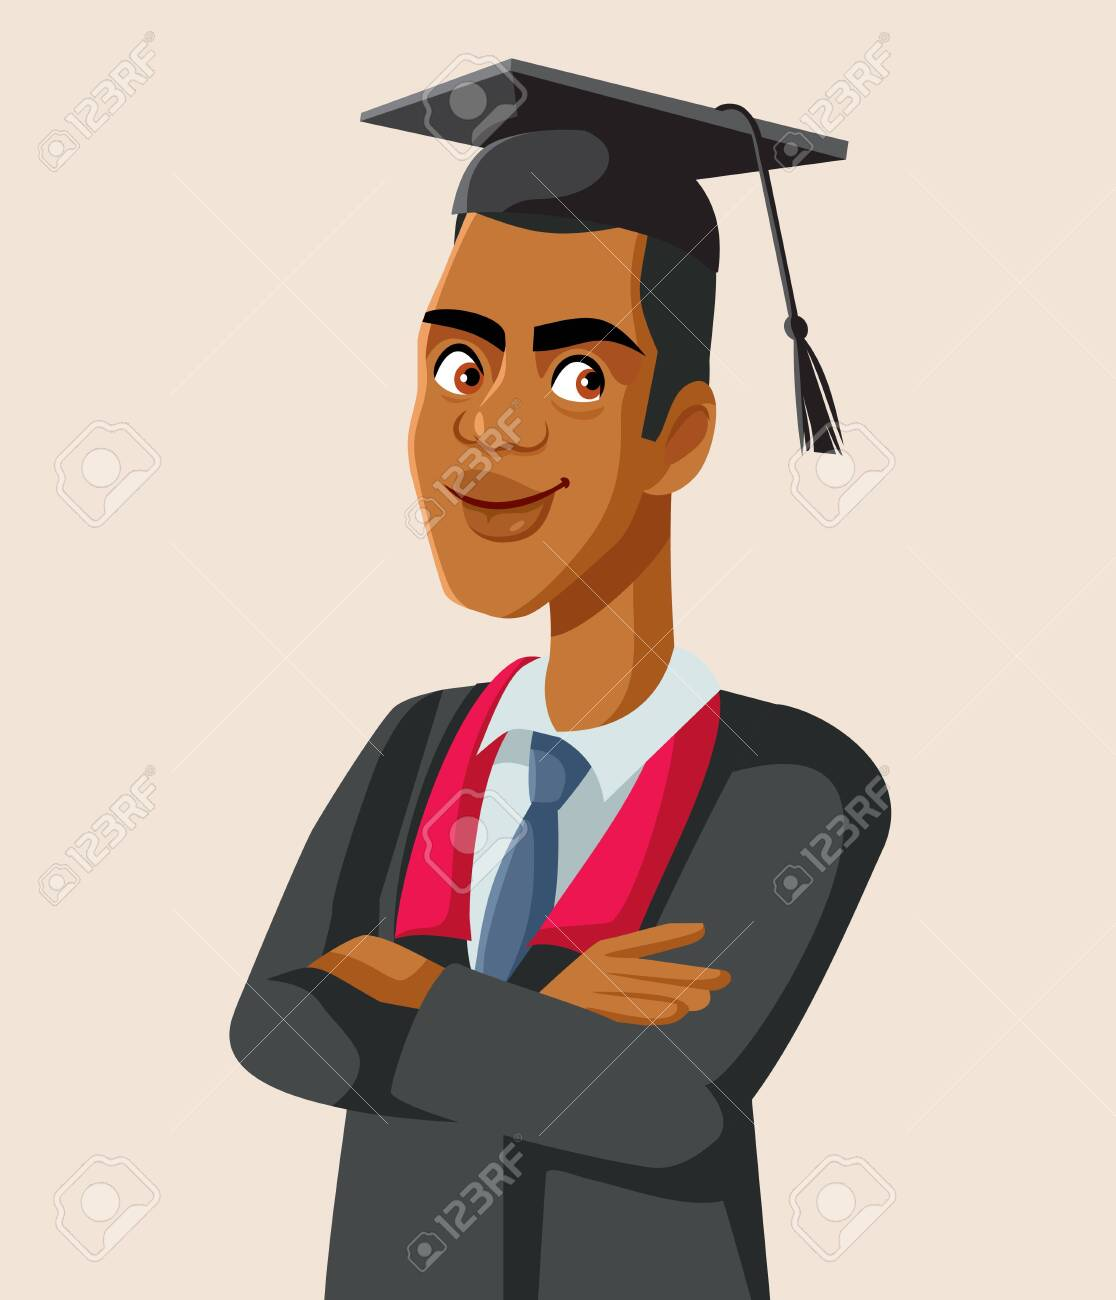 Afro American Male Graduate Student Vector - 149339181